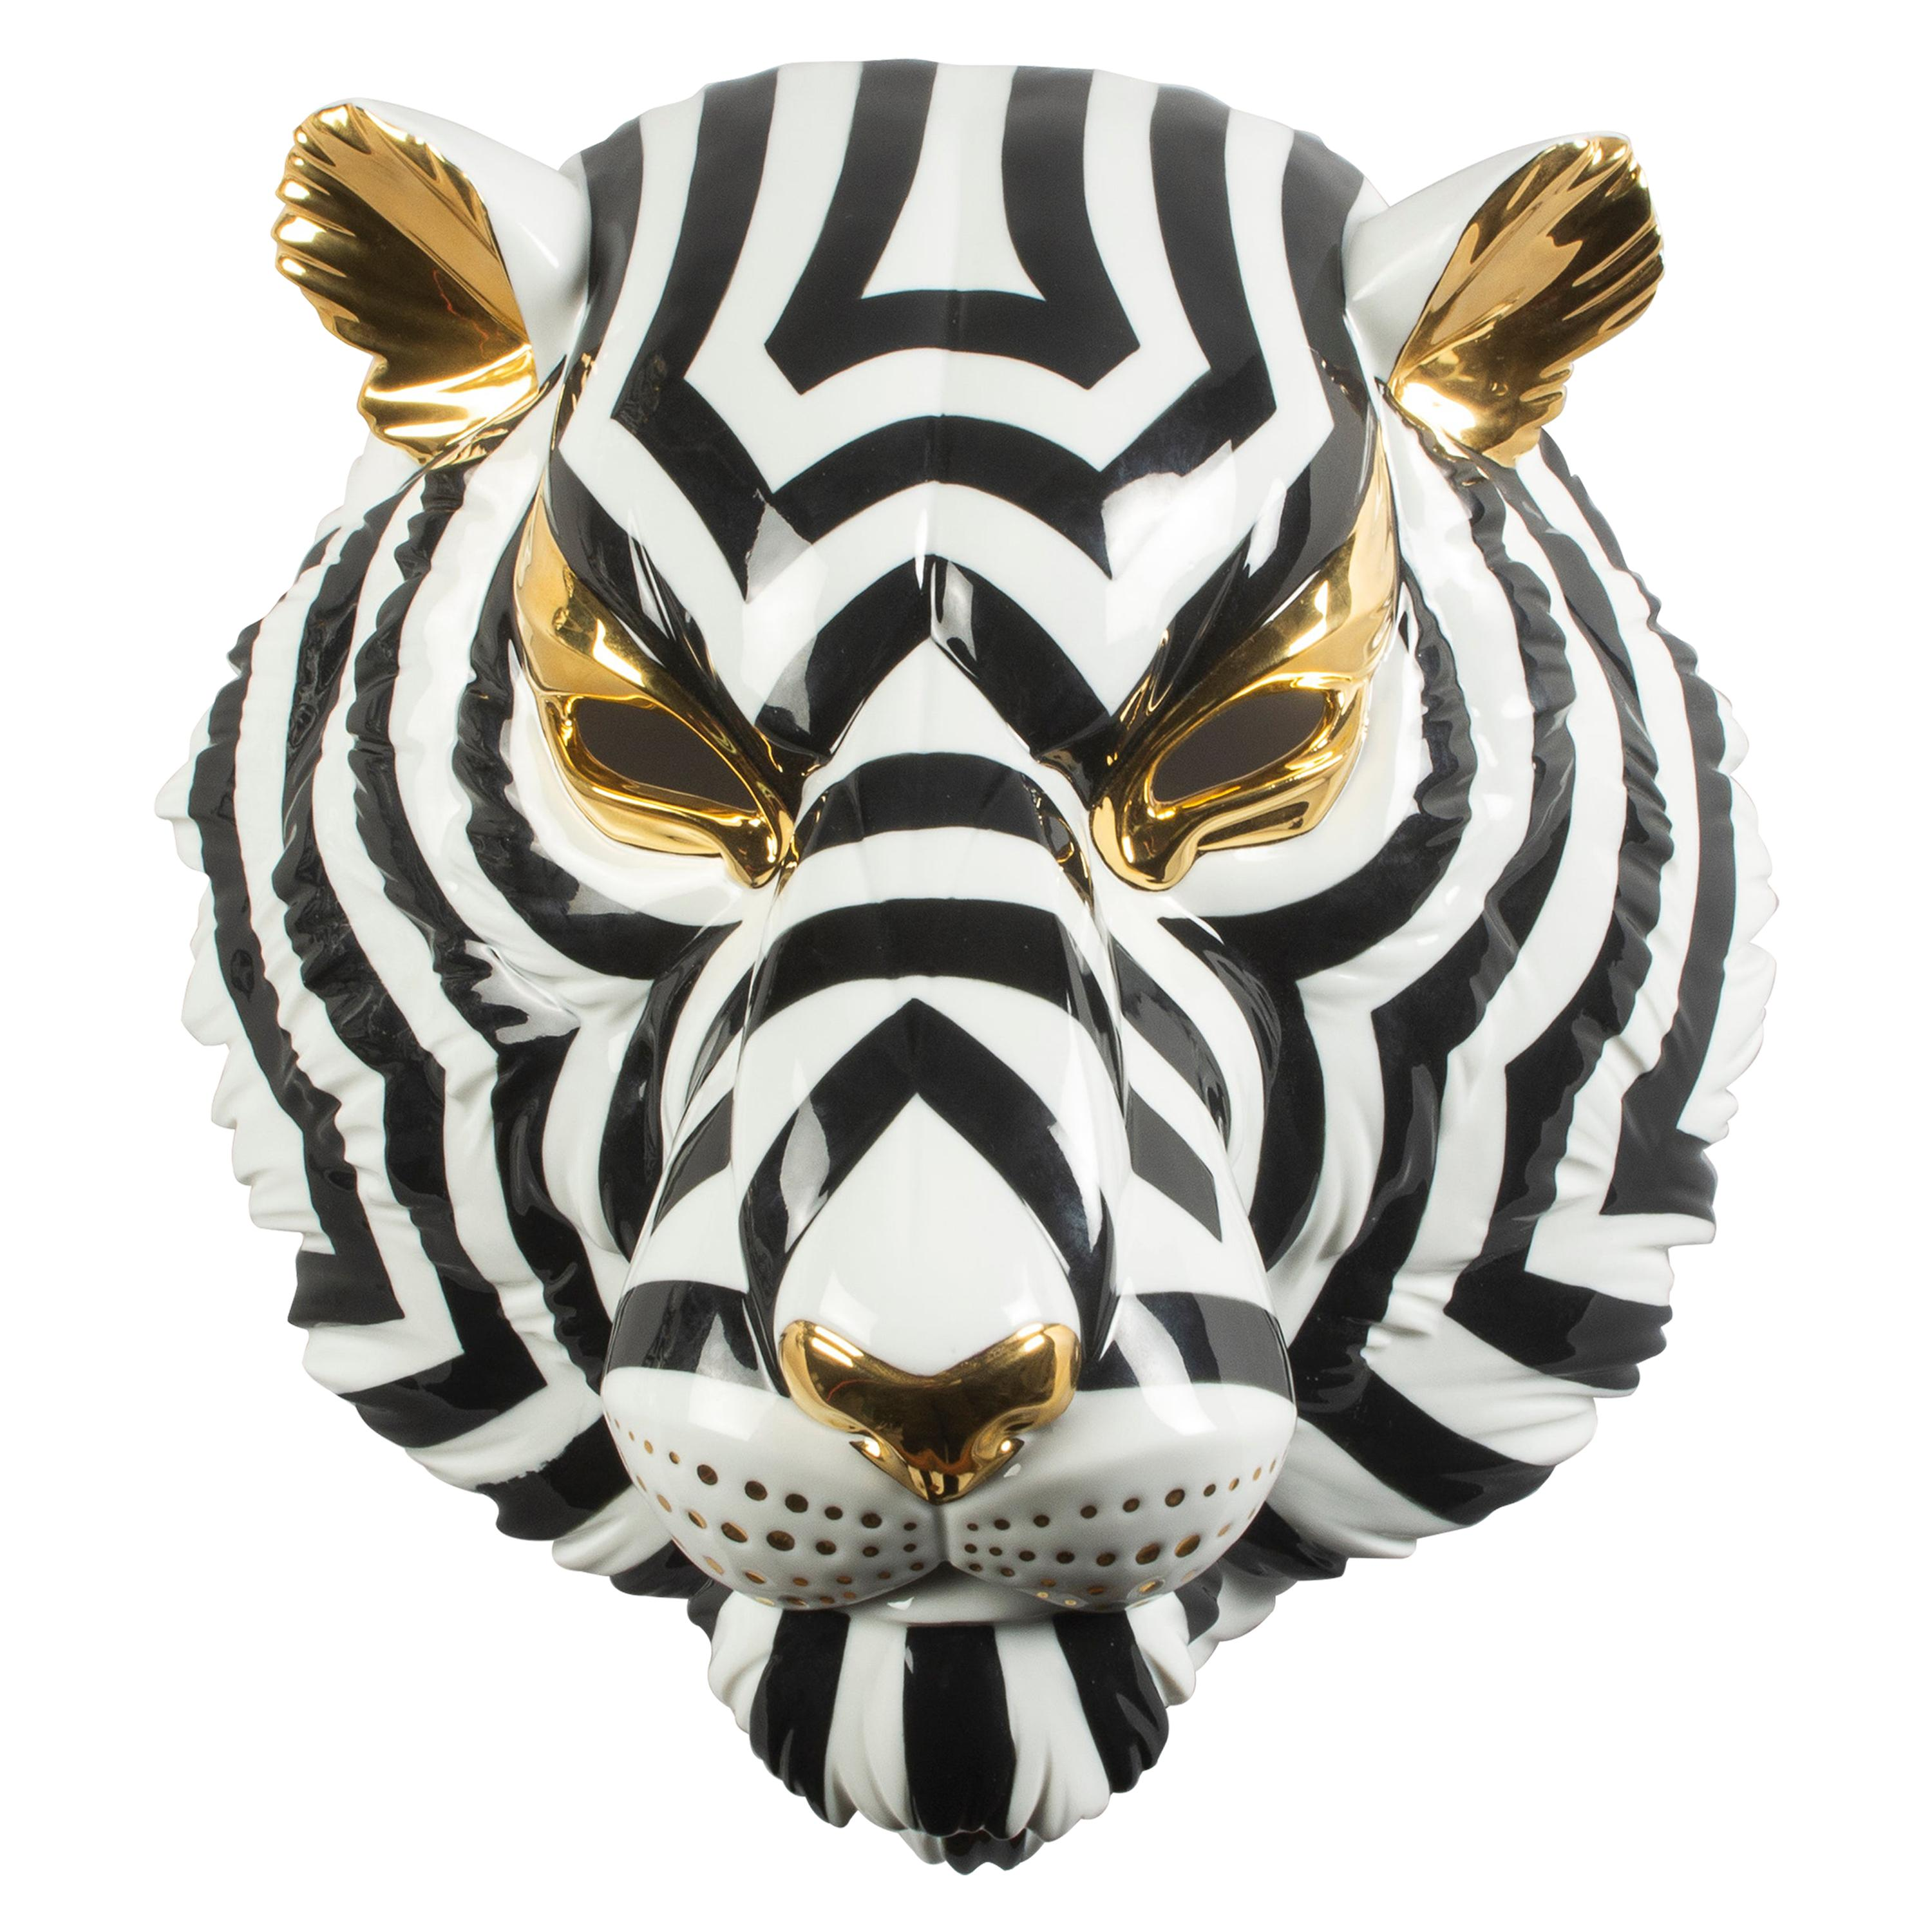 Lladro Tiger Mask in Black and Gold by José Luis Santes